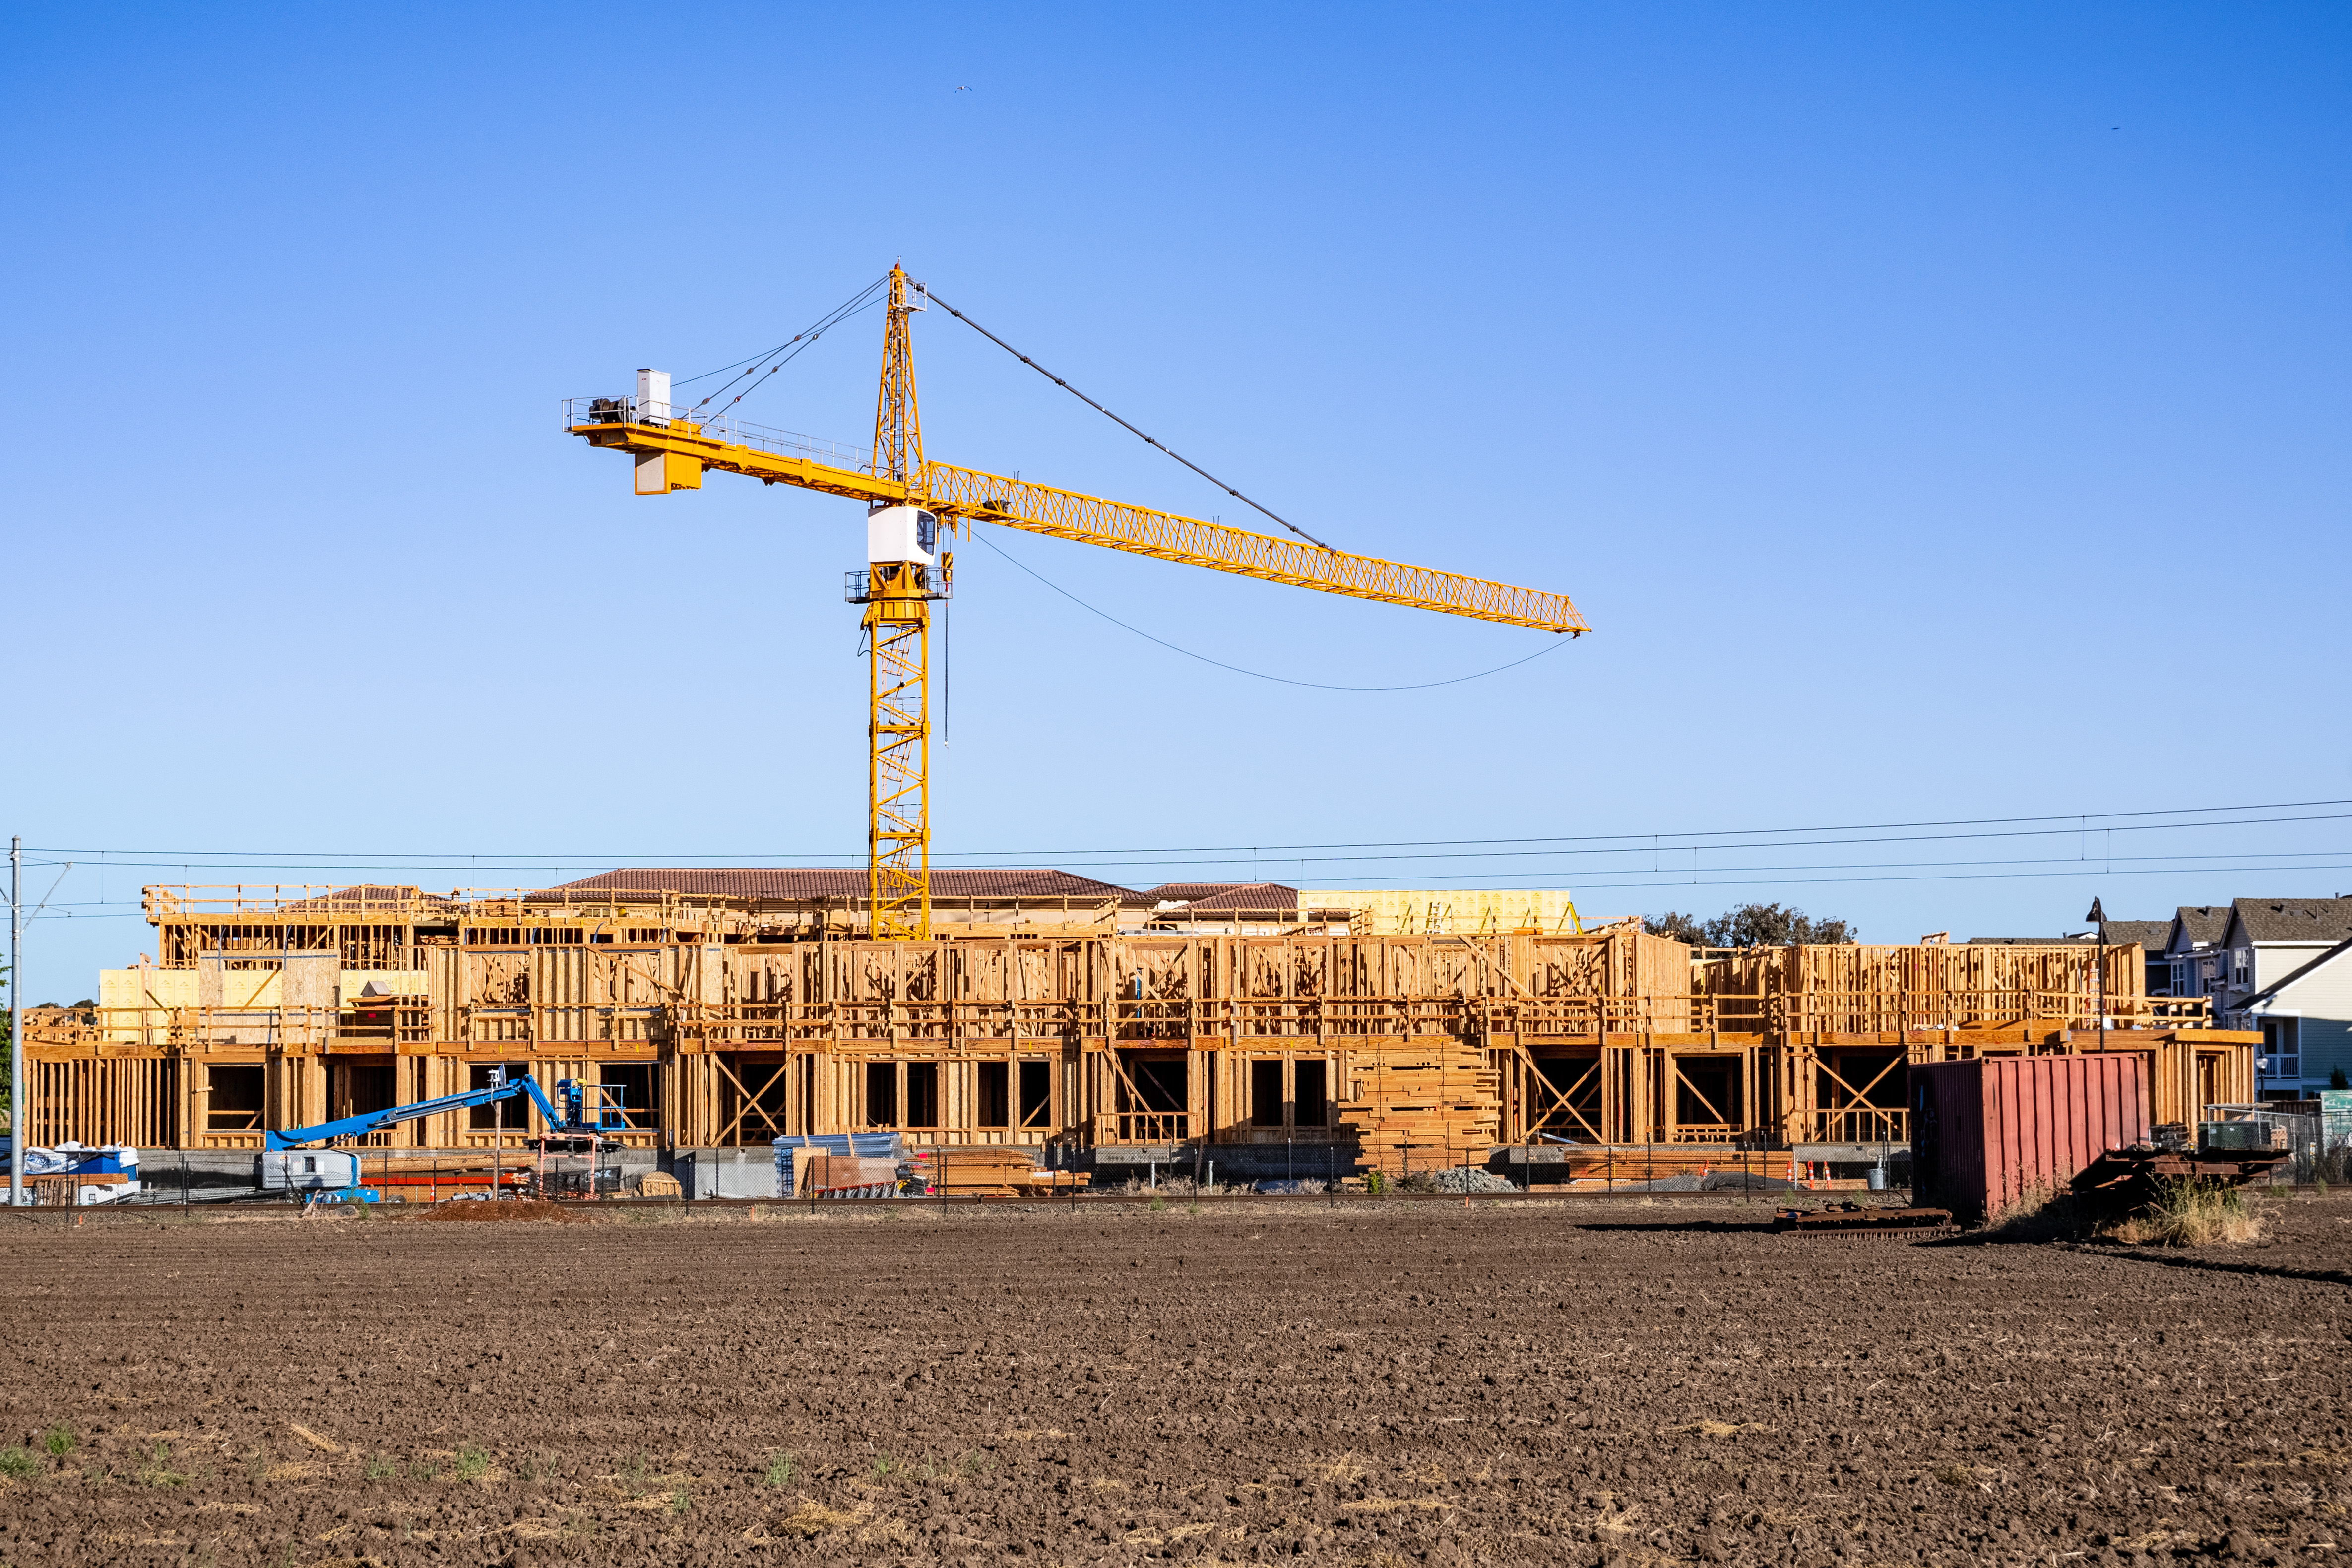 Construction of mid-rise buildings with a large yellow crane hovering above.